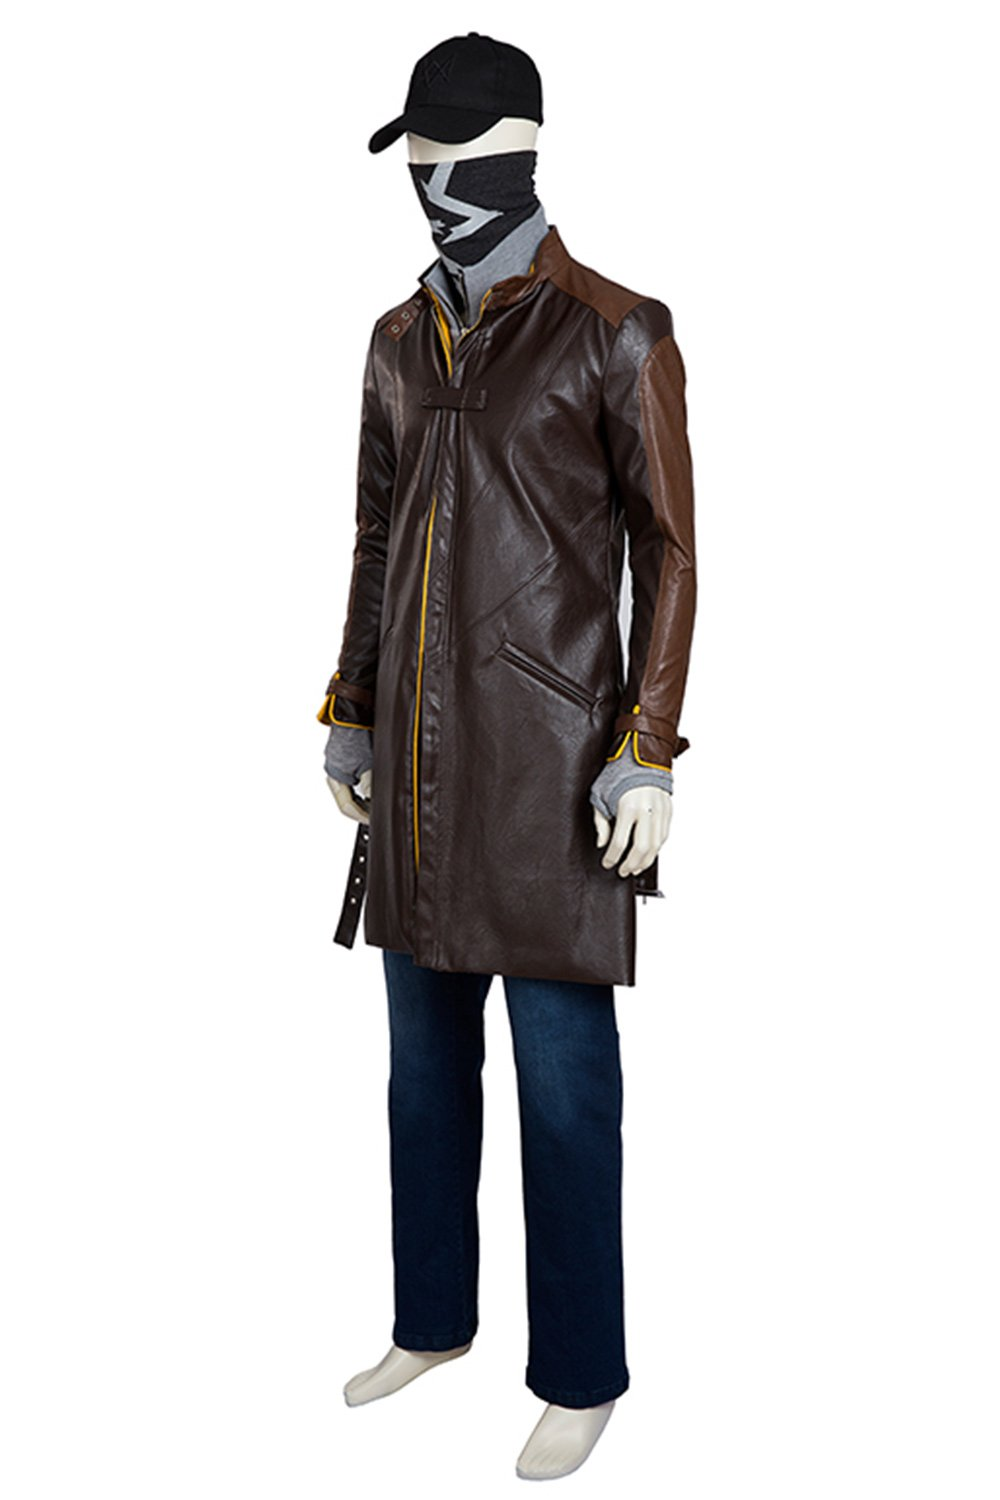 Watch Dog Aiden Pearce Outfit Cosplay Costume